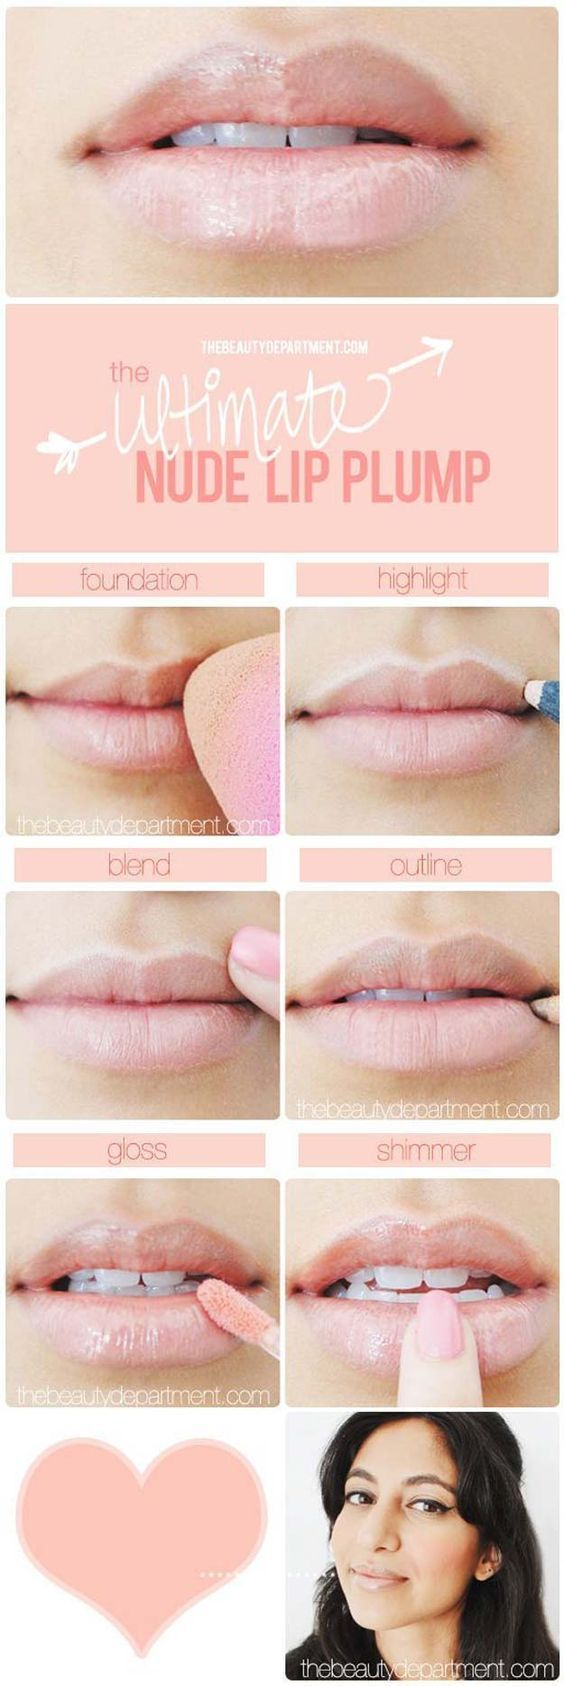 Lipstick tutorials best step by step makeup tutorial how to the by step makeup tutorial how to the uptown lip easy and quick ways to apply lipstick and awesome beauty ideas cool ideas for teen makeup for school baditri Images